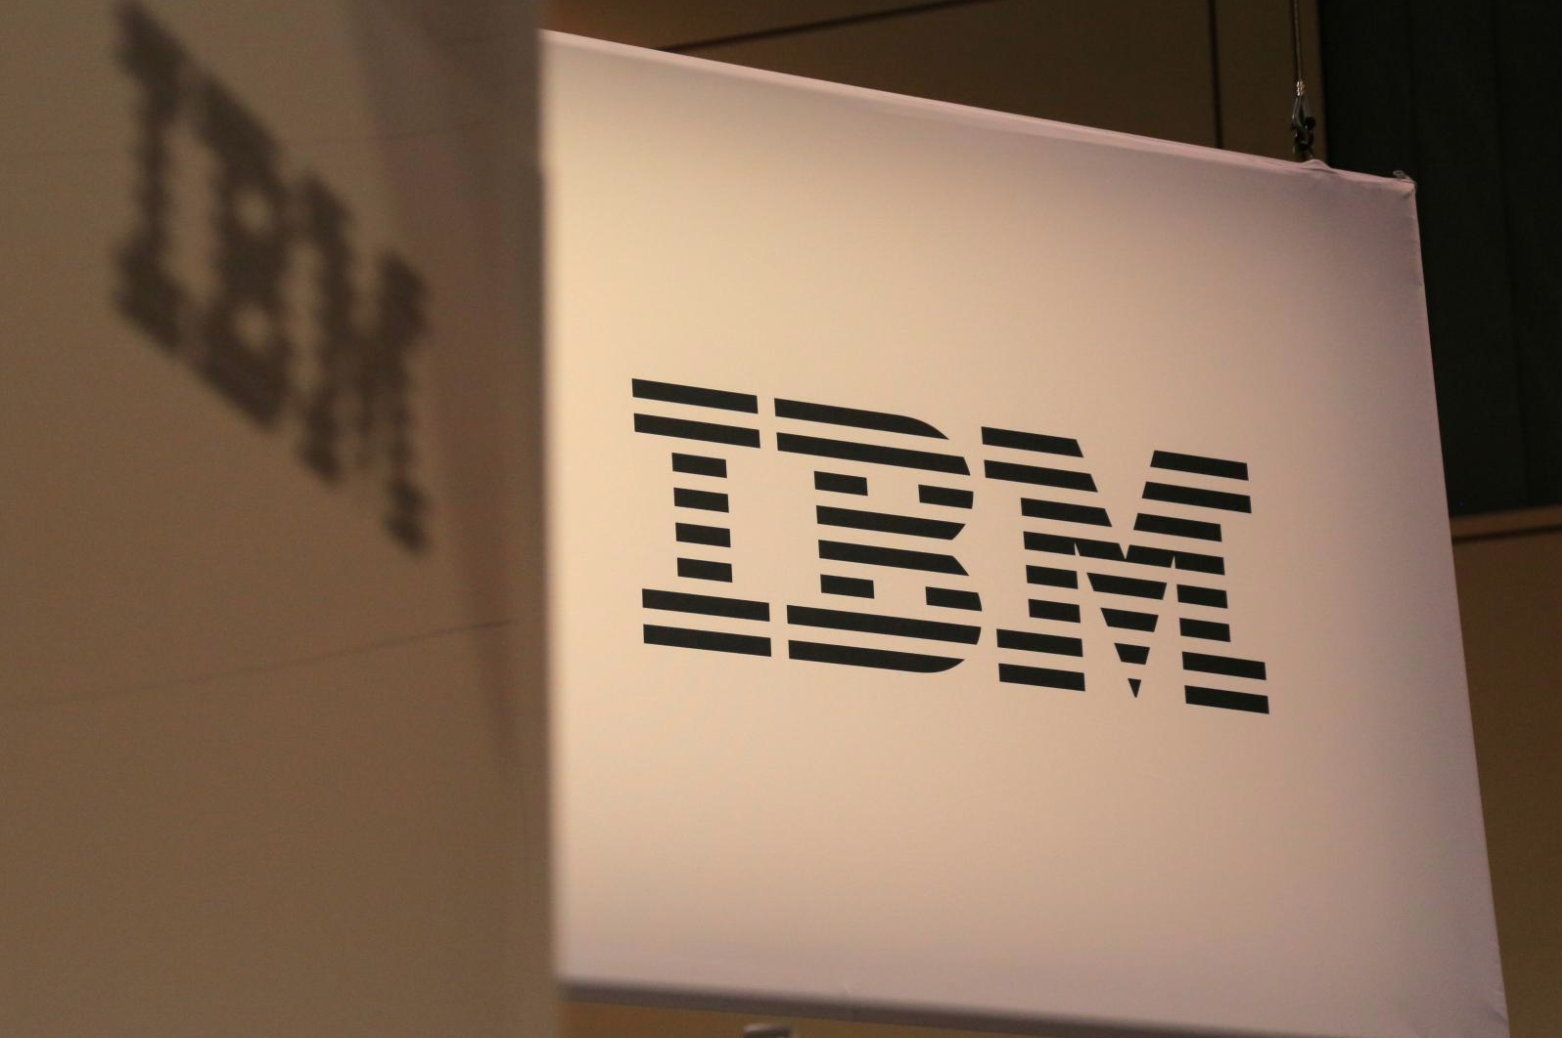 IBM via REUTERS - Chris Helgre